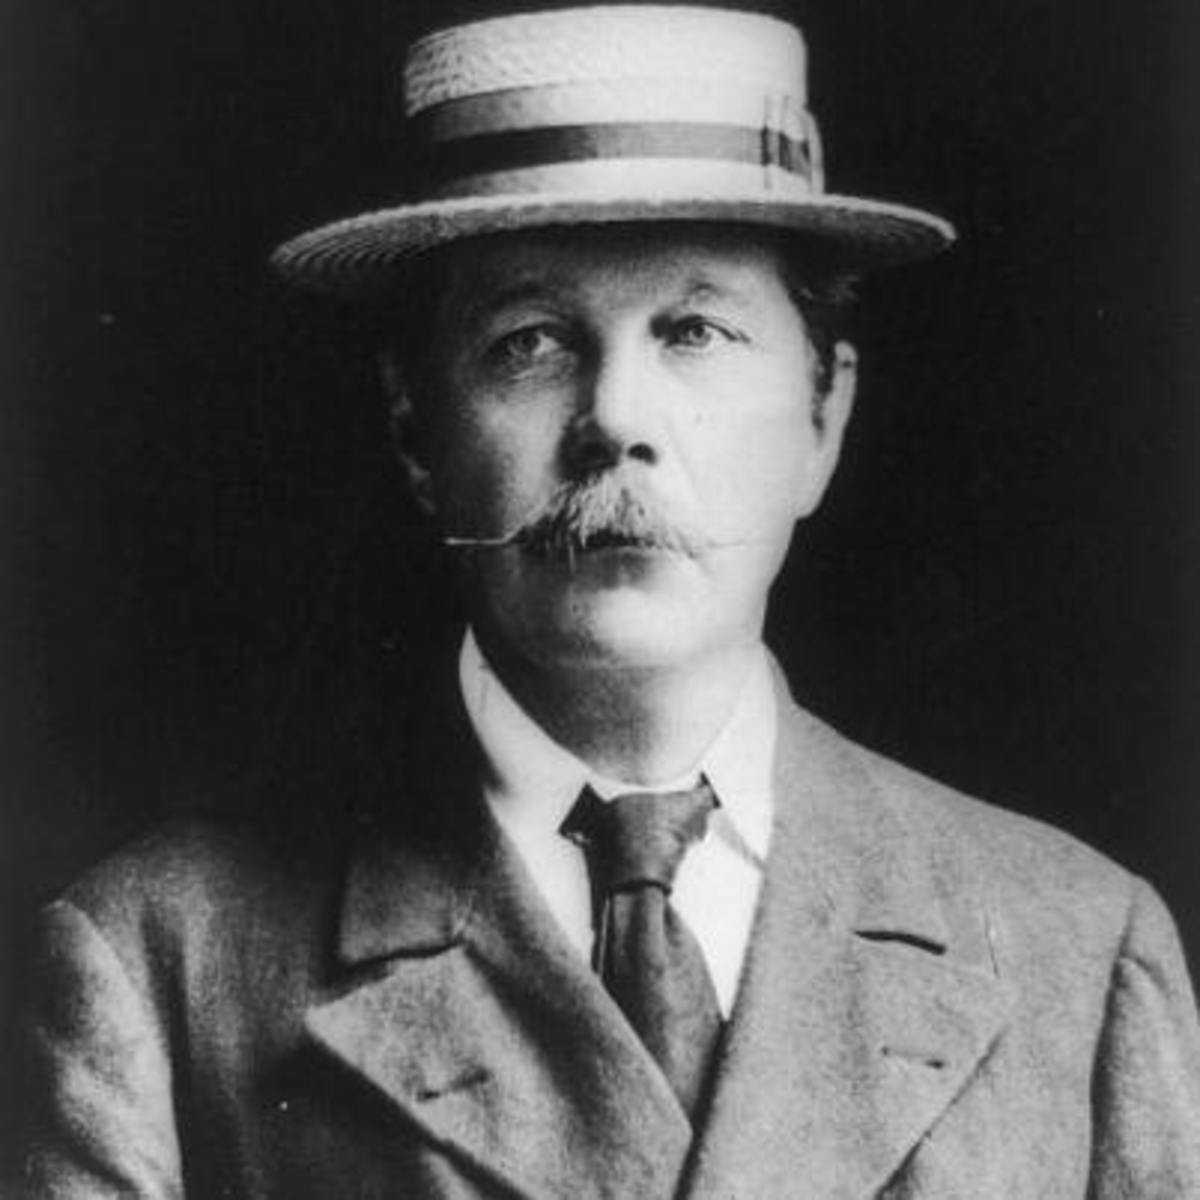 Sir Arthur Conan Doyle: The author of Sherlock Holmes and not only